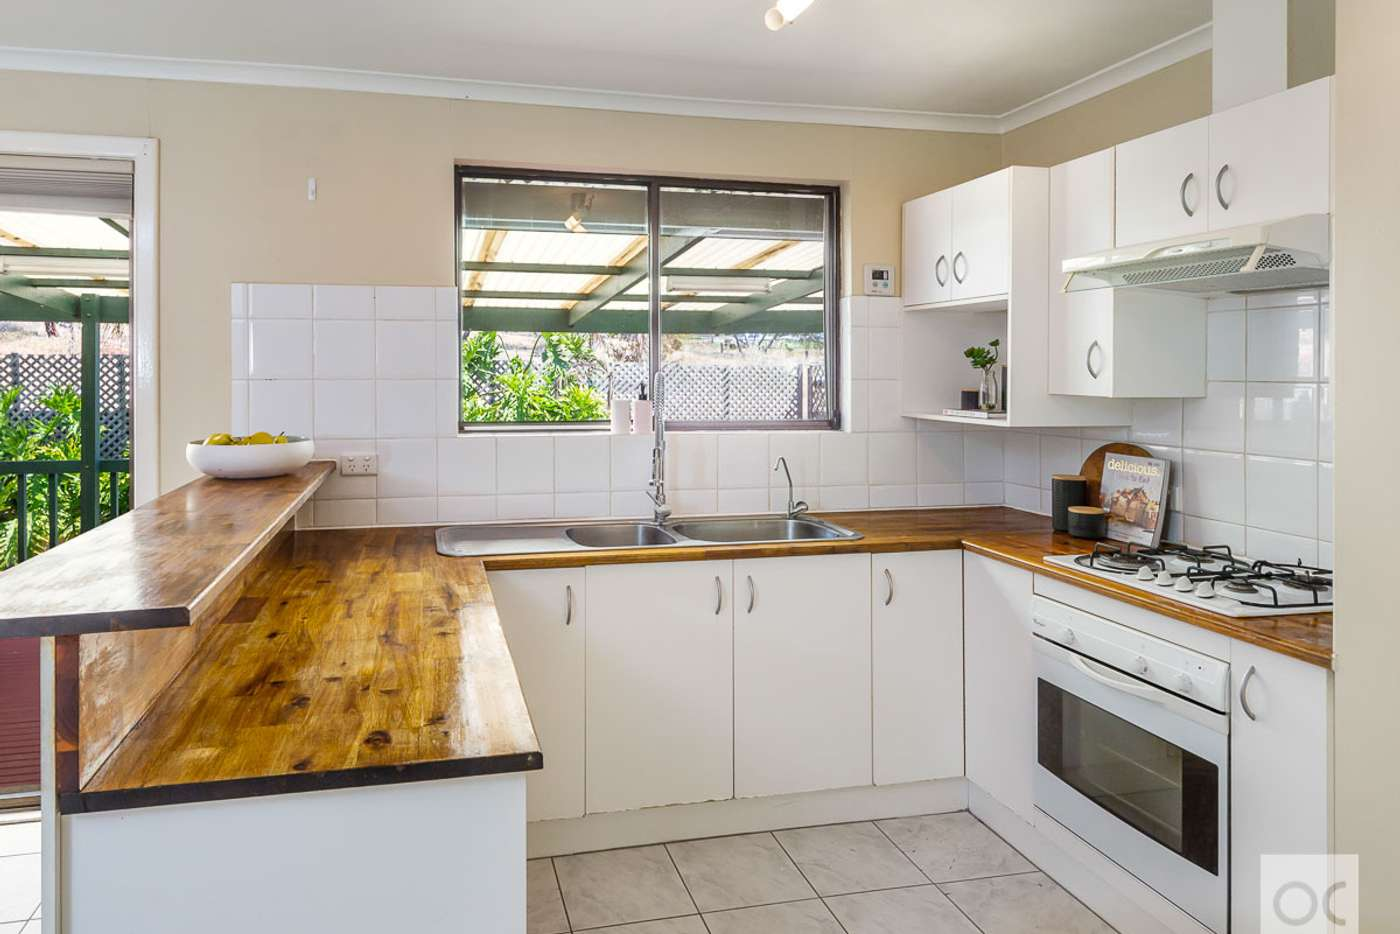 Sixth view of Homely house listing, 1 Ridgefield Avenue, Seaview Downs SA 5049